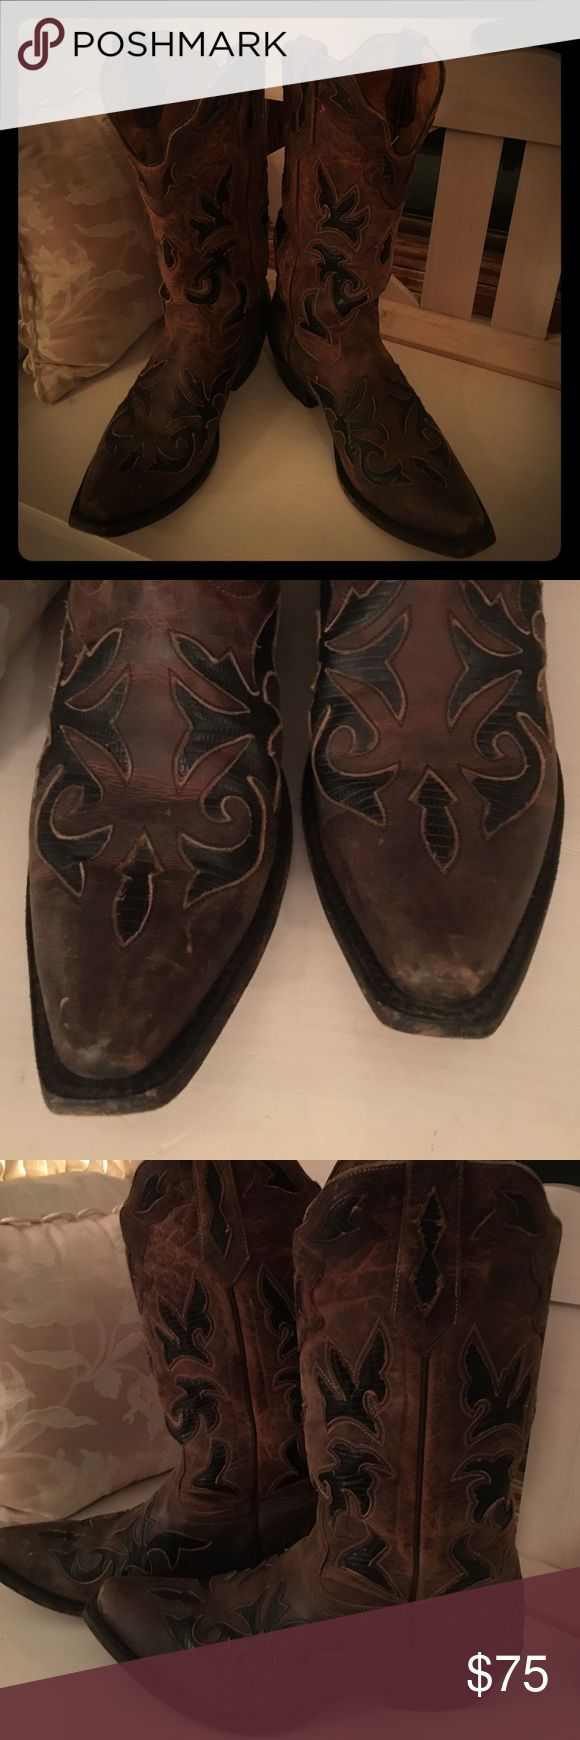 Pre-LOVED Men boots 💙 My FAVORITE pre-loved Johnny Ringo leather lined boots 😍 I bought for my husband 💙 they are size 9.5 D! sooooo sad that they don't fit him ...... Johnny Ringo  Shoes Cowboy & Western Boots